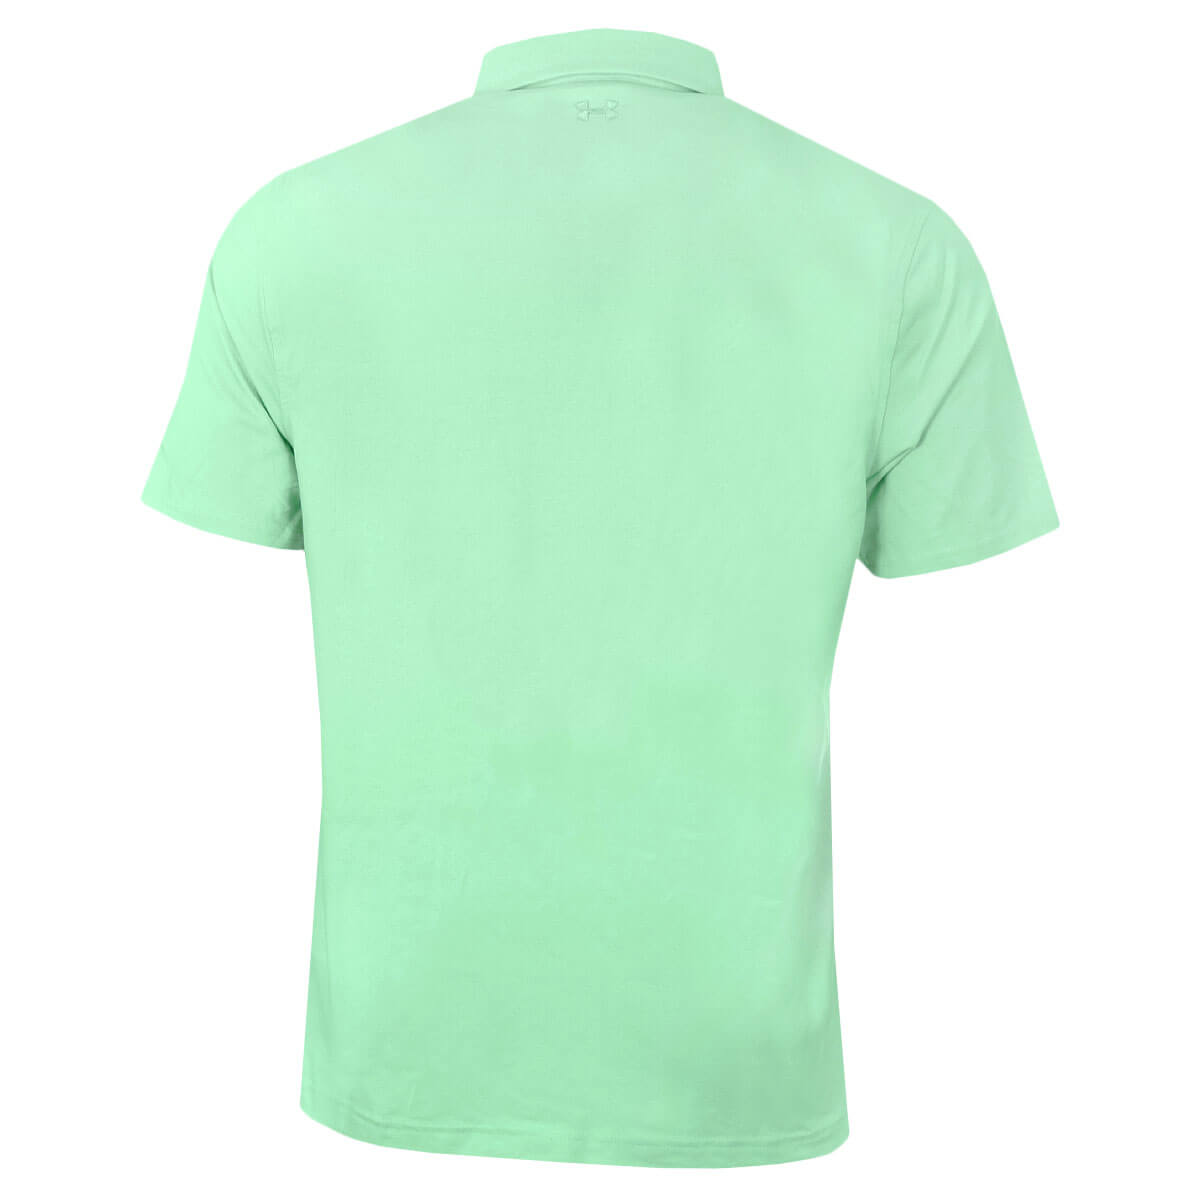 Under-Armour-Mens-2019-CC-Scramble-Charged-Cotton-Stretch-Golf-Polo-Shirt thumbnail 10